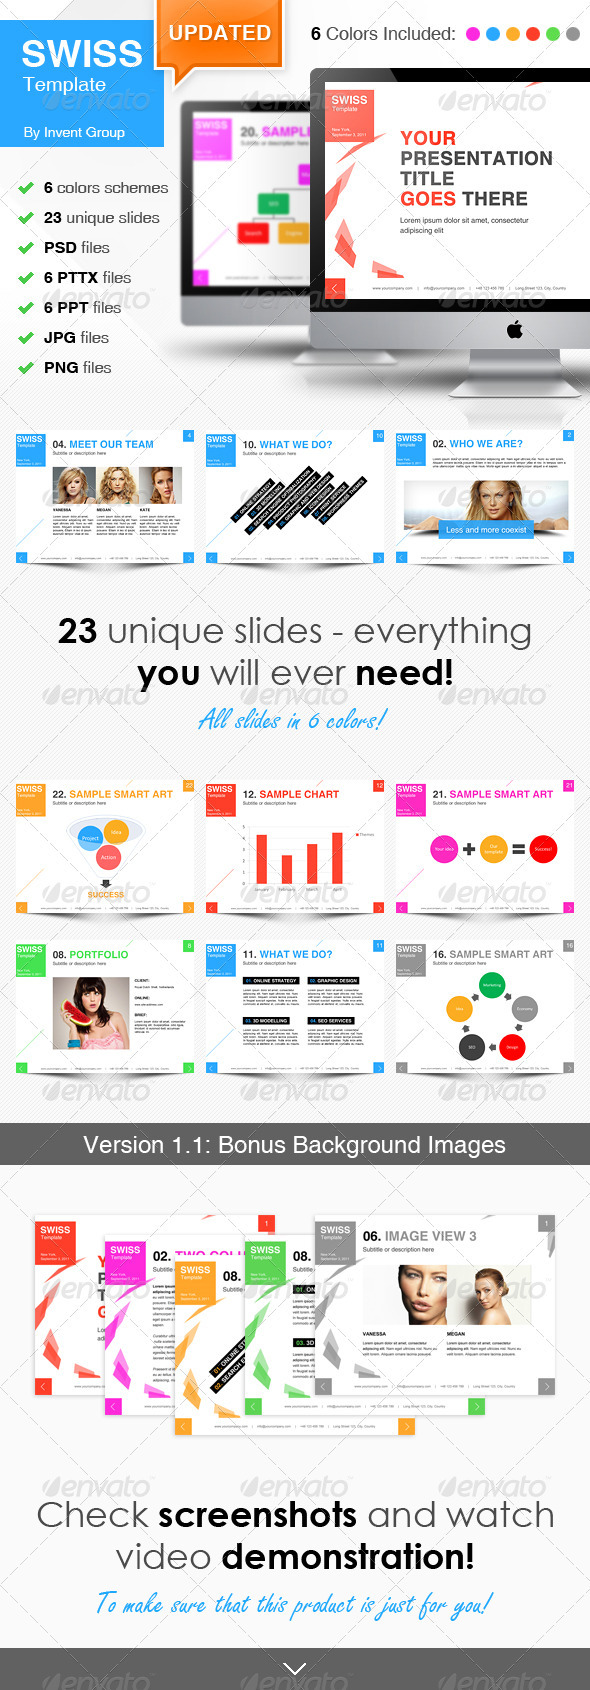 Swiss Idea Template - Powerpoint Templates Presentation Templates